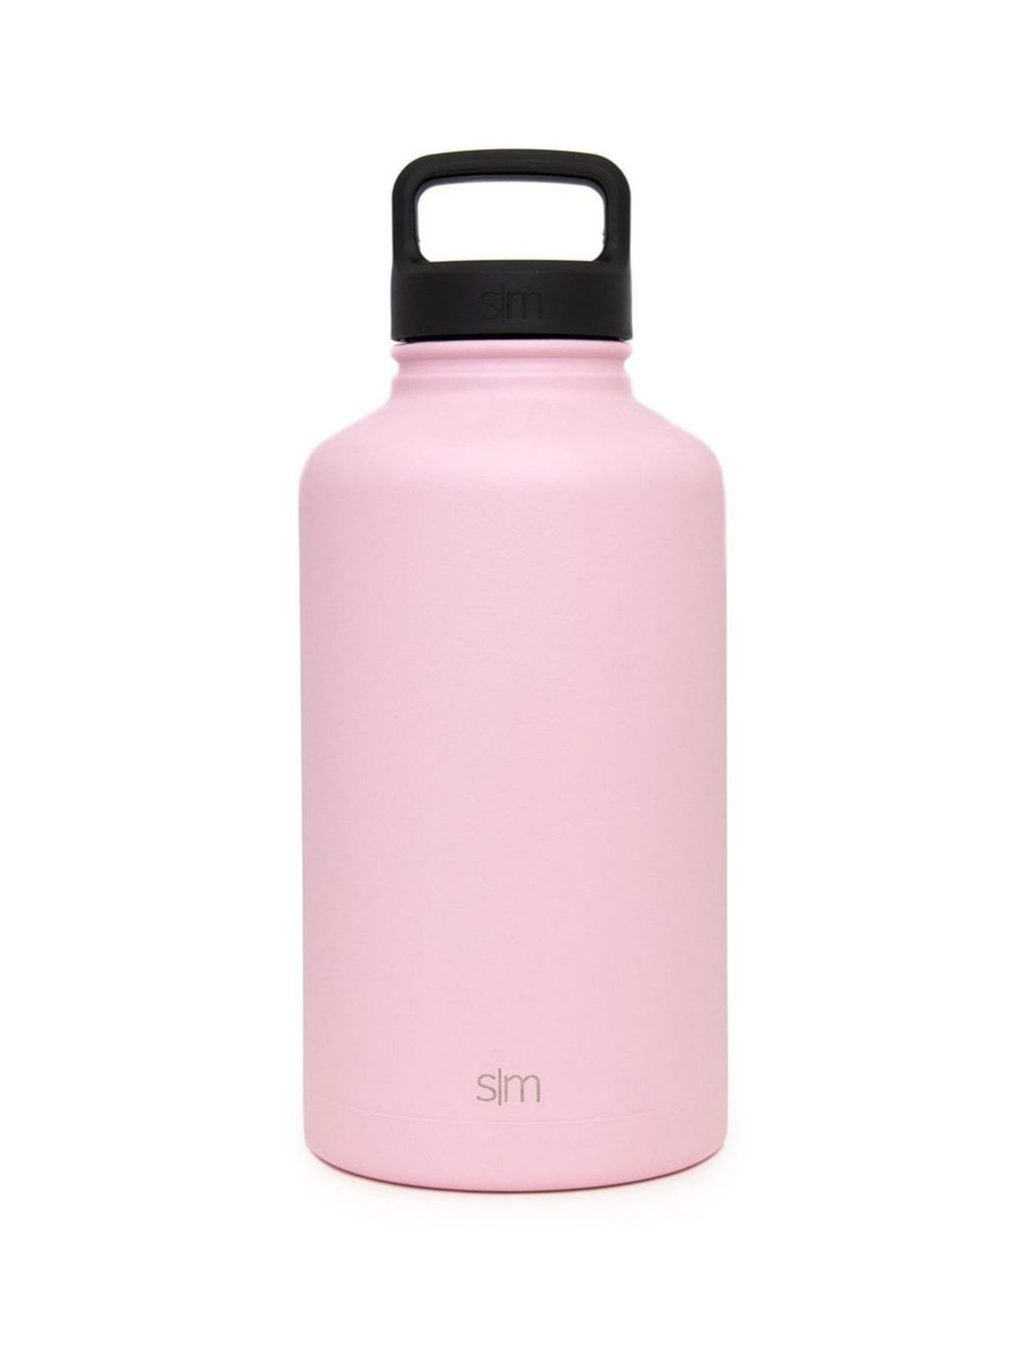 Simple modern summit water bottle in pink